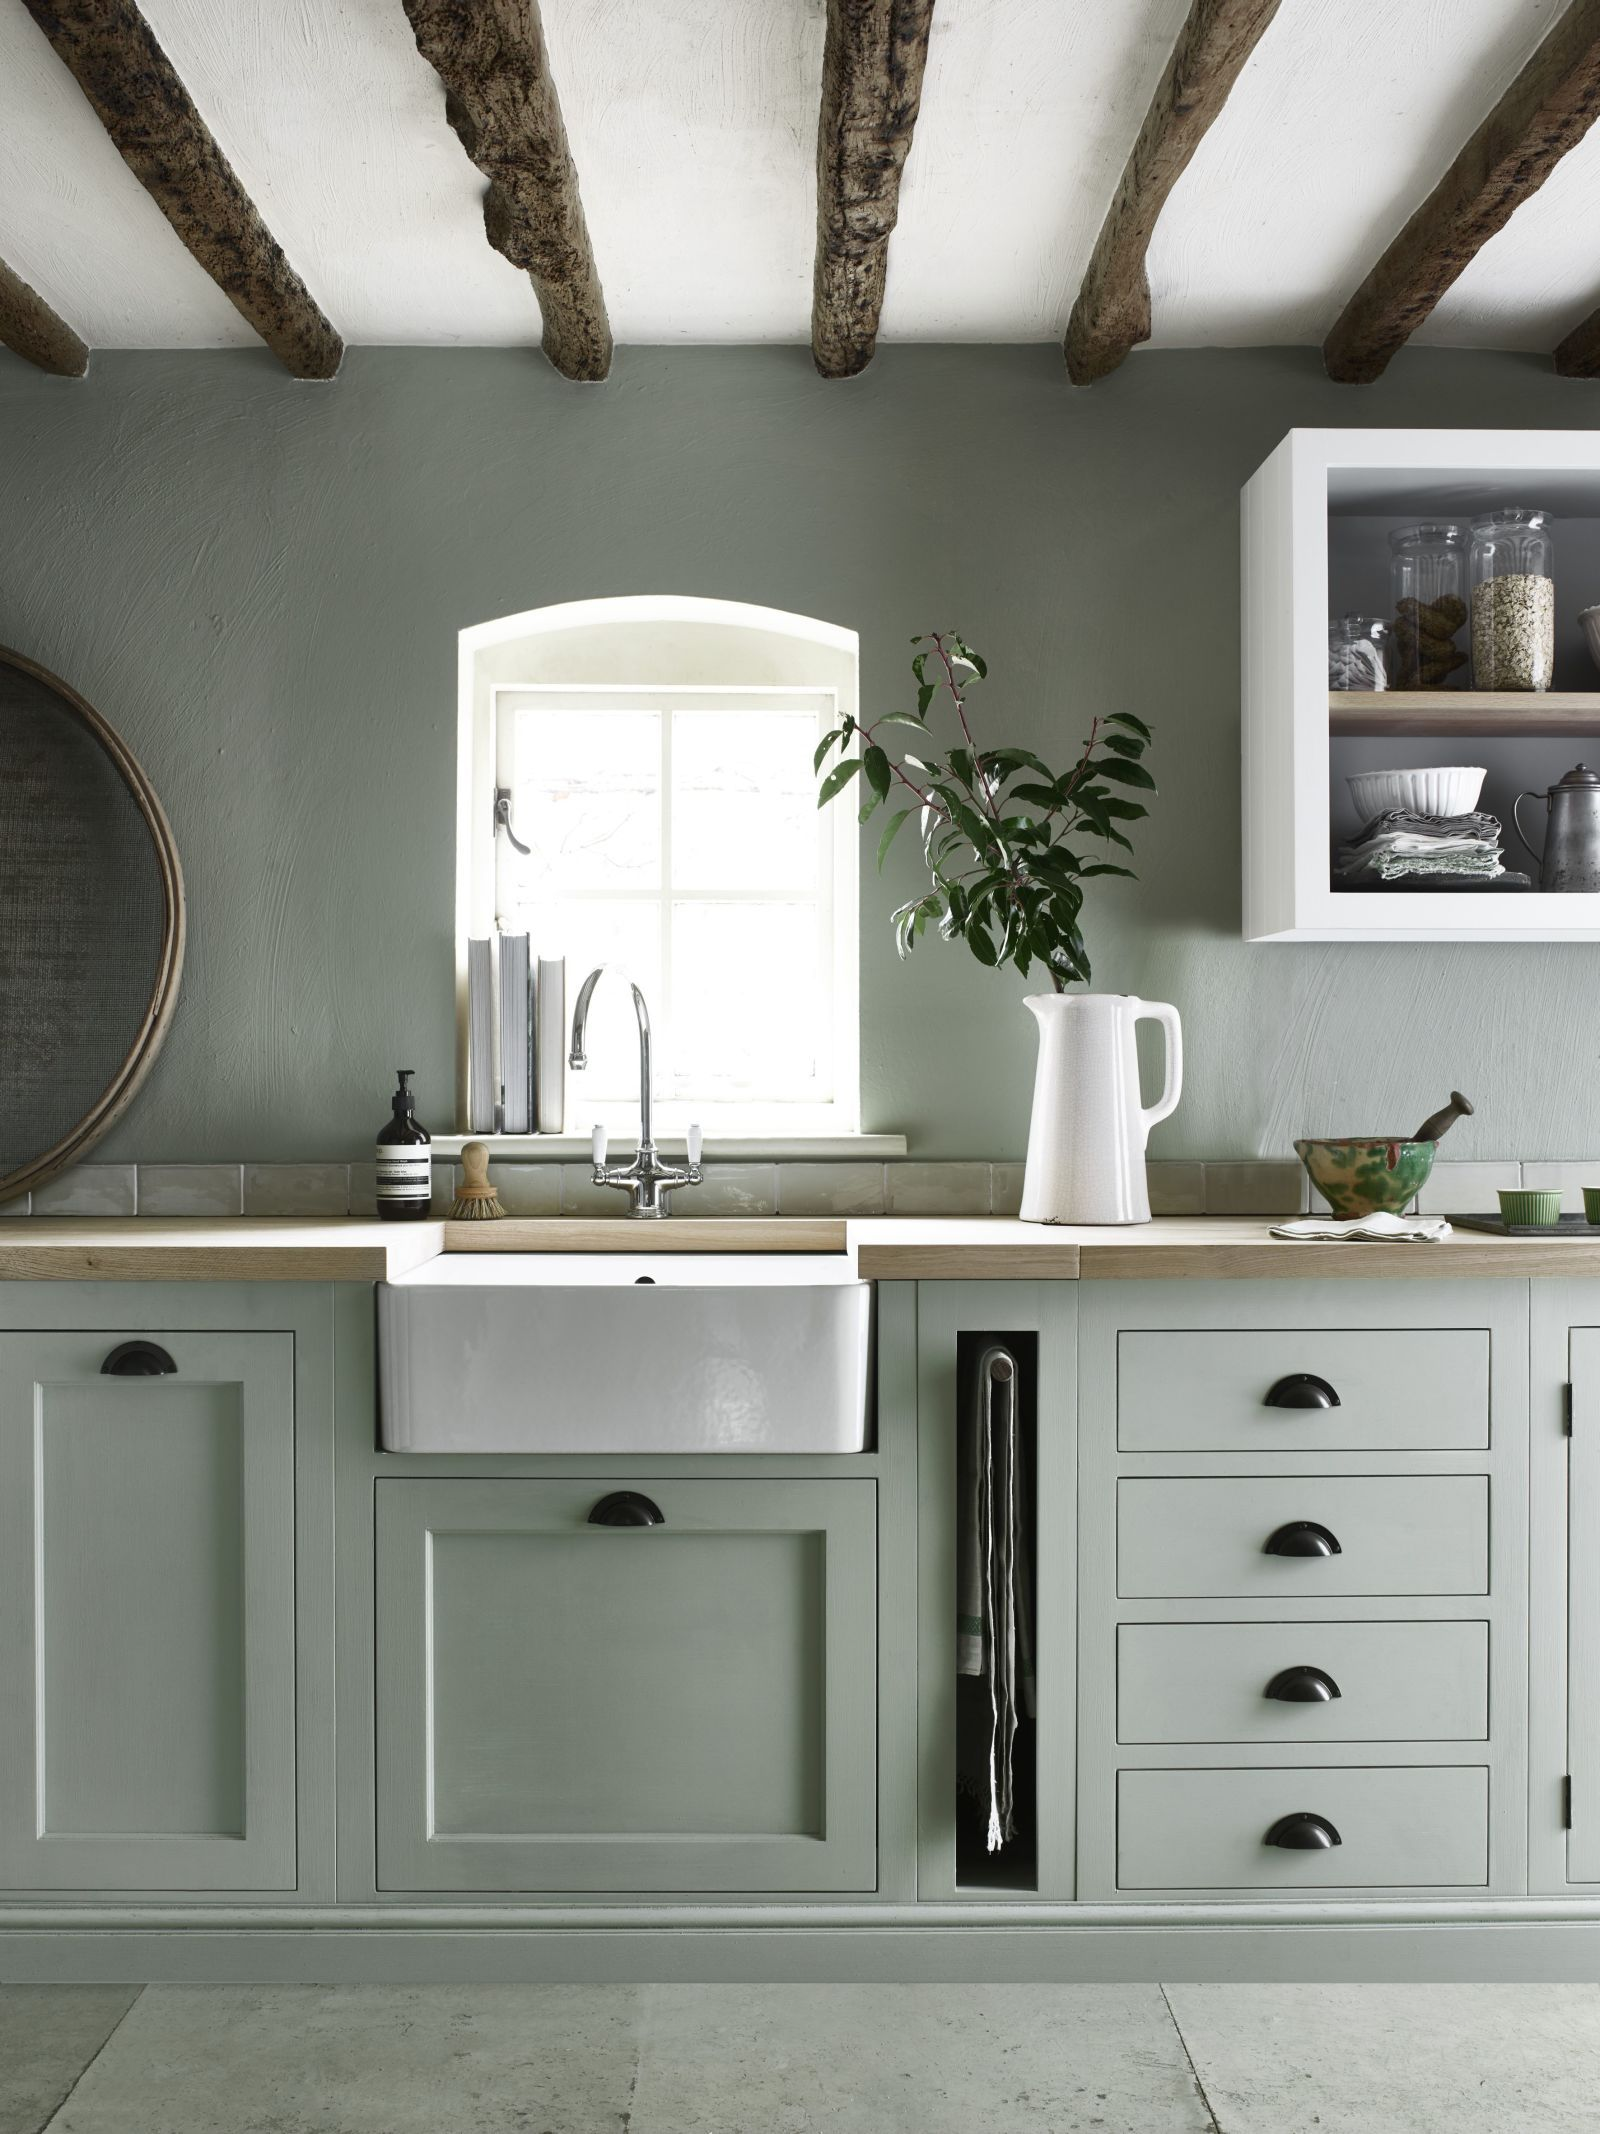 7 ways to create a country kitchen that's fit for 2019